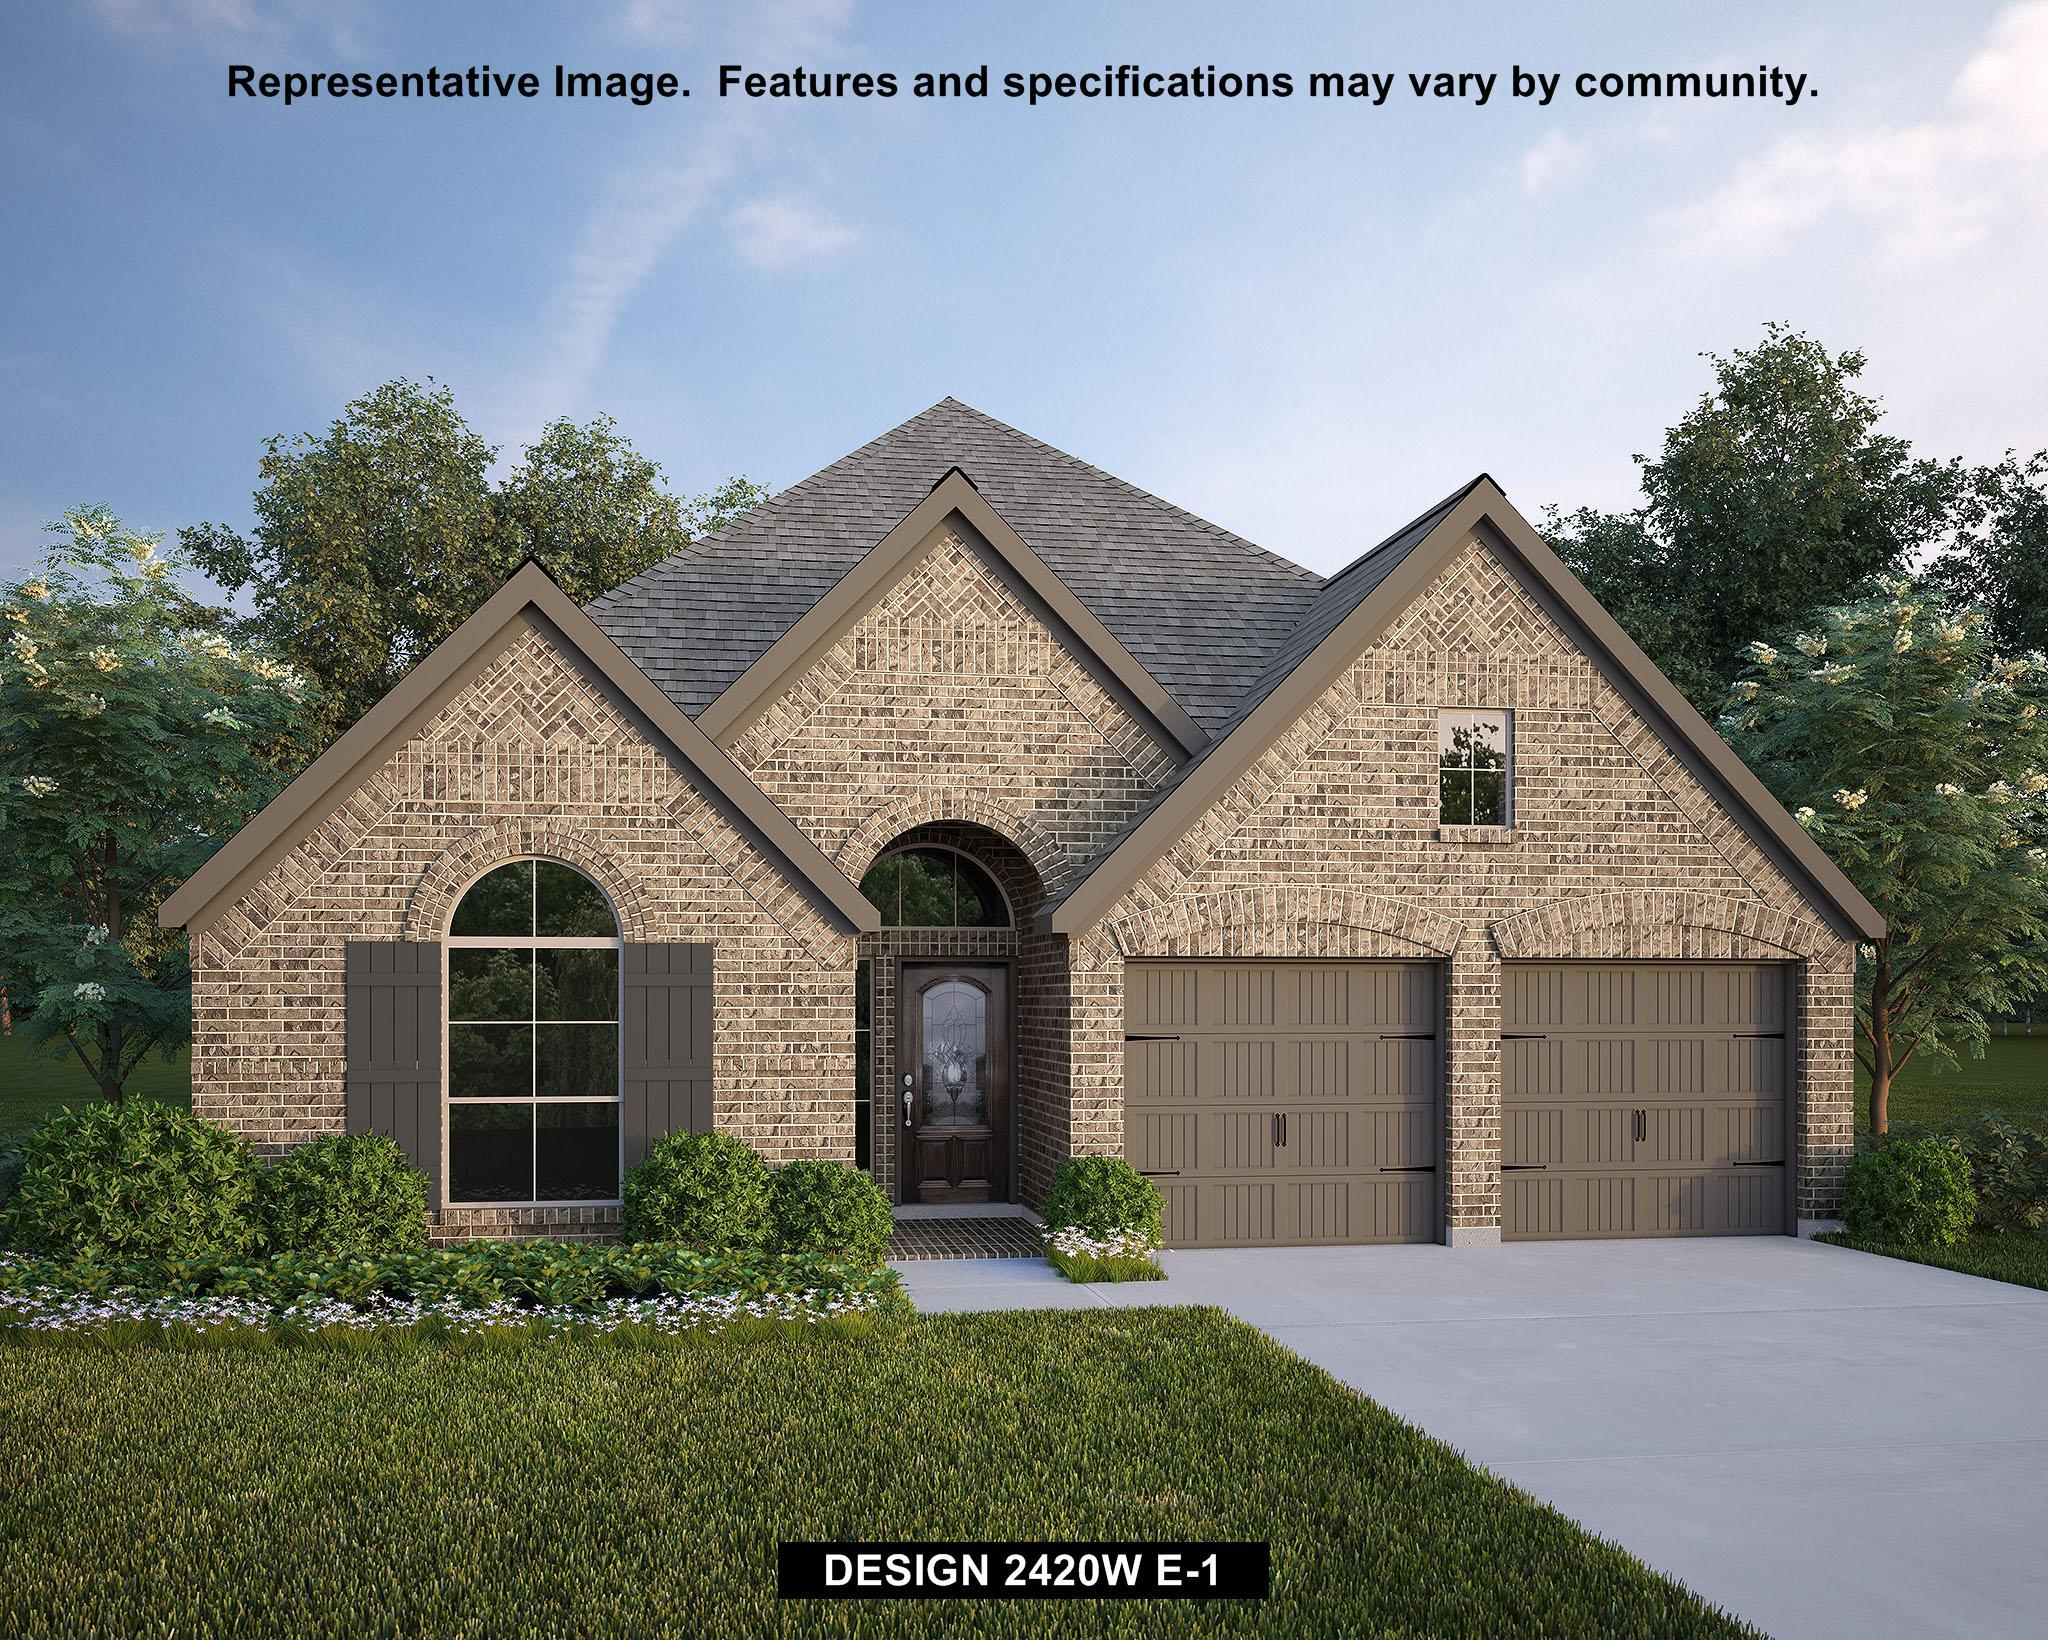 New Homes For Sale In Missouri City Tx 28 Images 2103